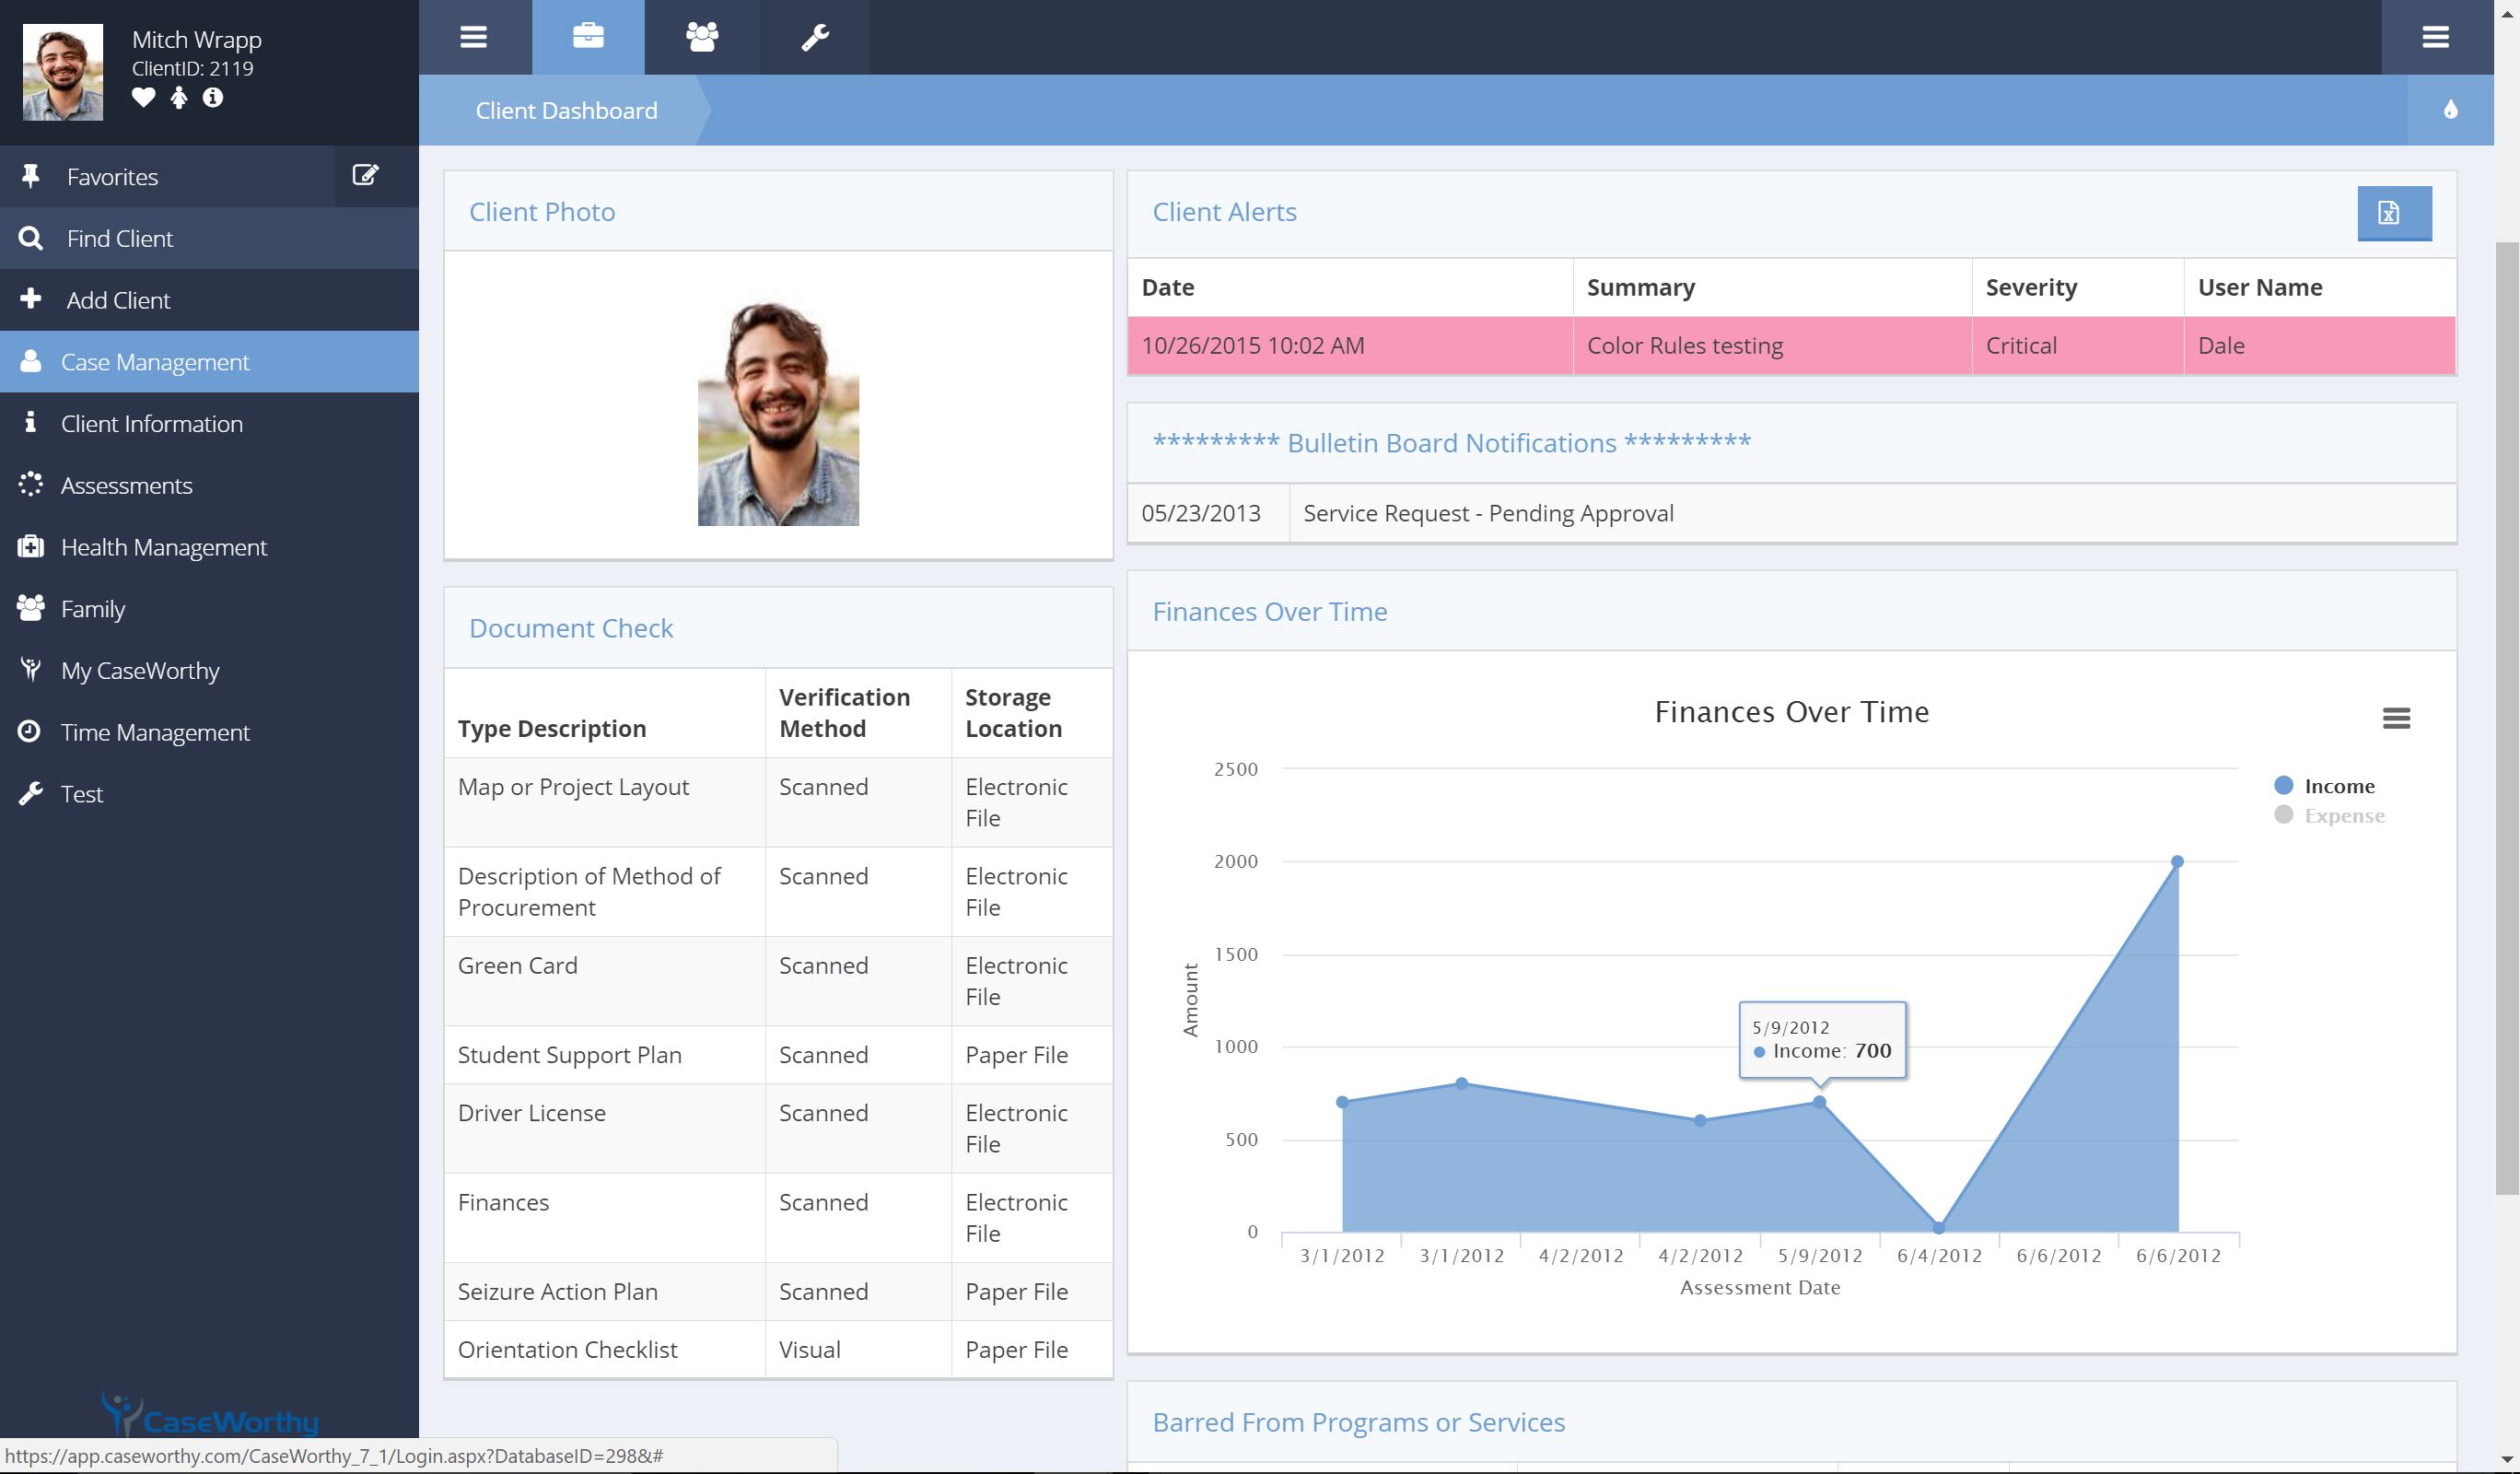 Reporting facilities leverage data for creating a range of operational, compliance, ad hoc, and custom reports that can be accessed on any device and shared with all stakeholders